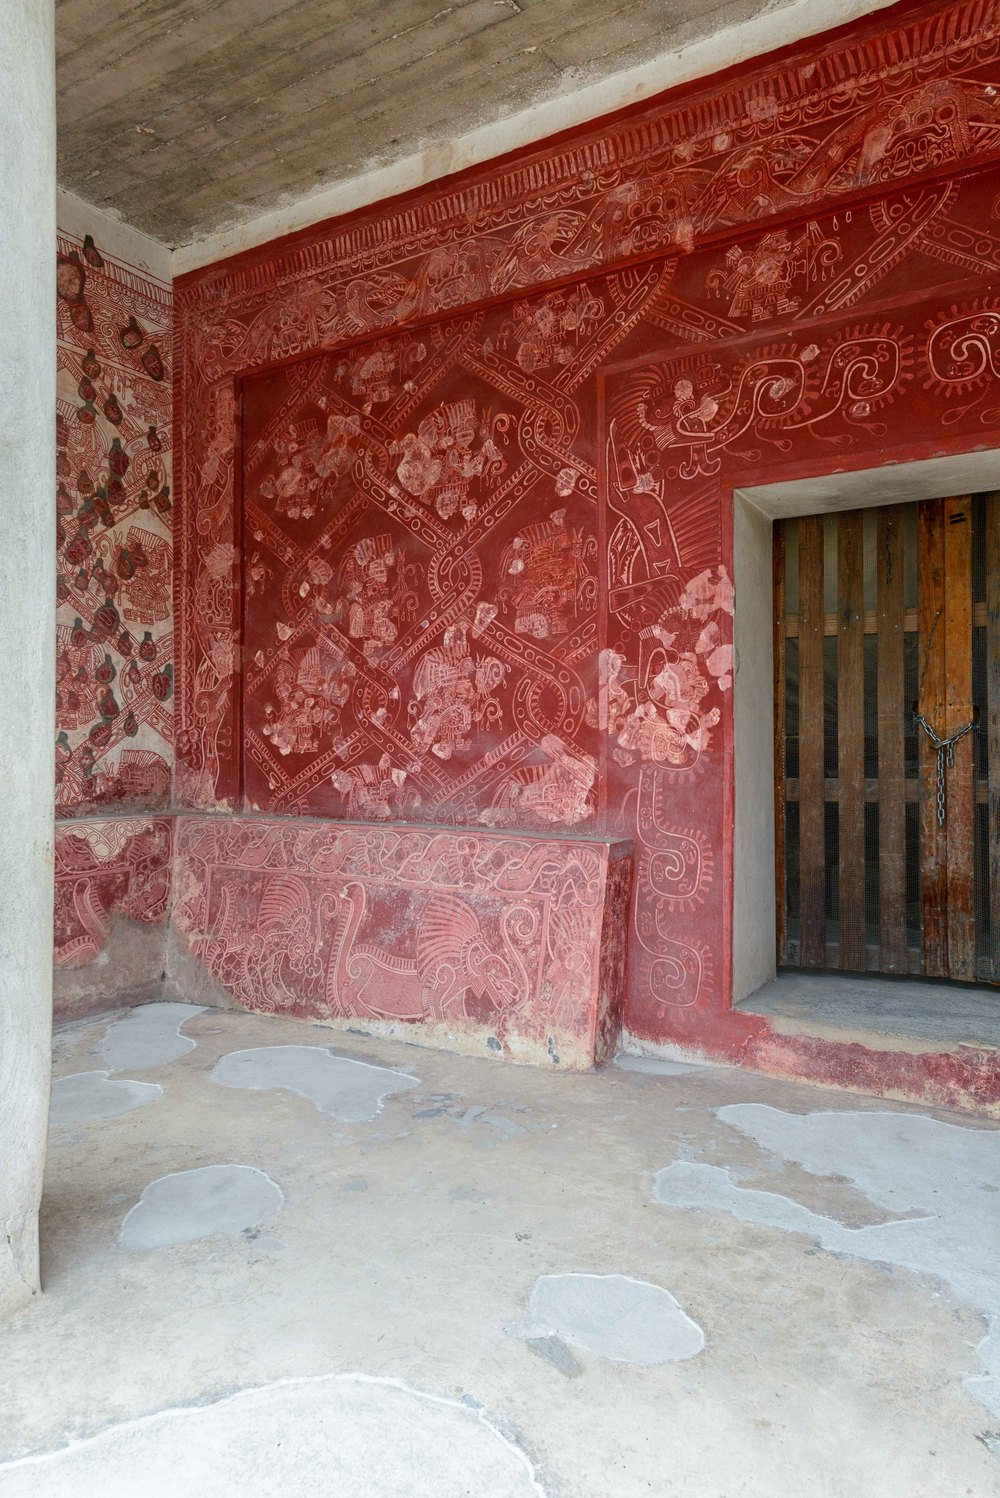 View into one of the temples with murals in Atetelco, one of the many housing complexes near Teotihuacan.